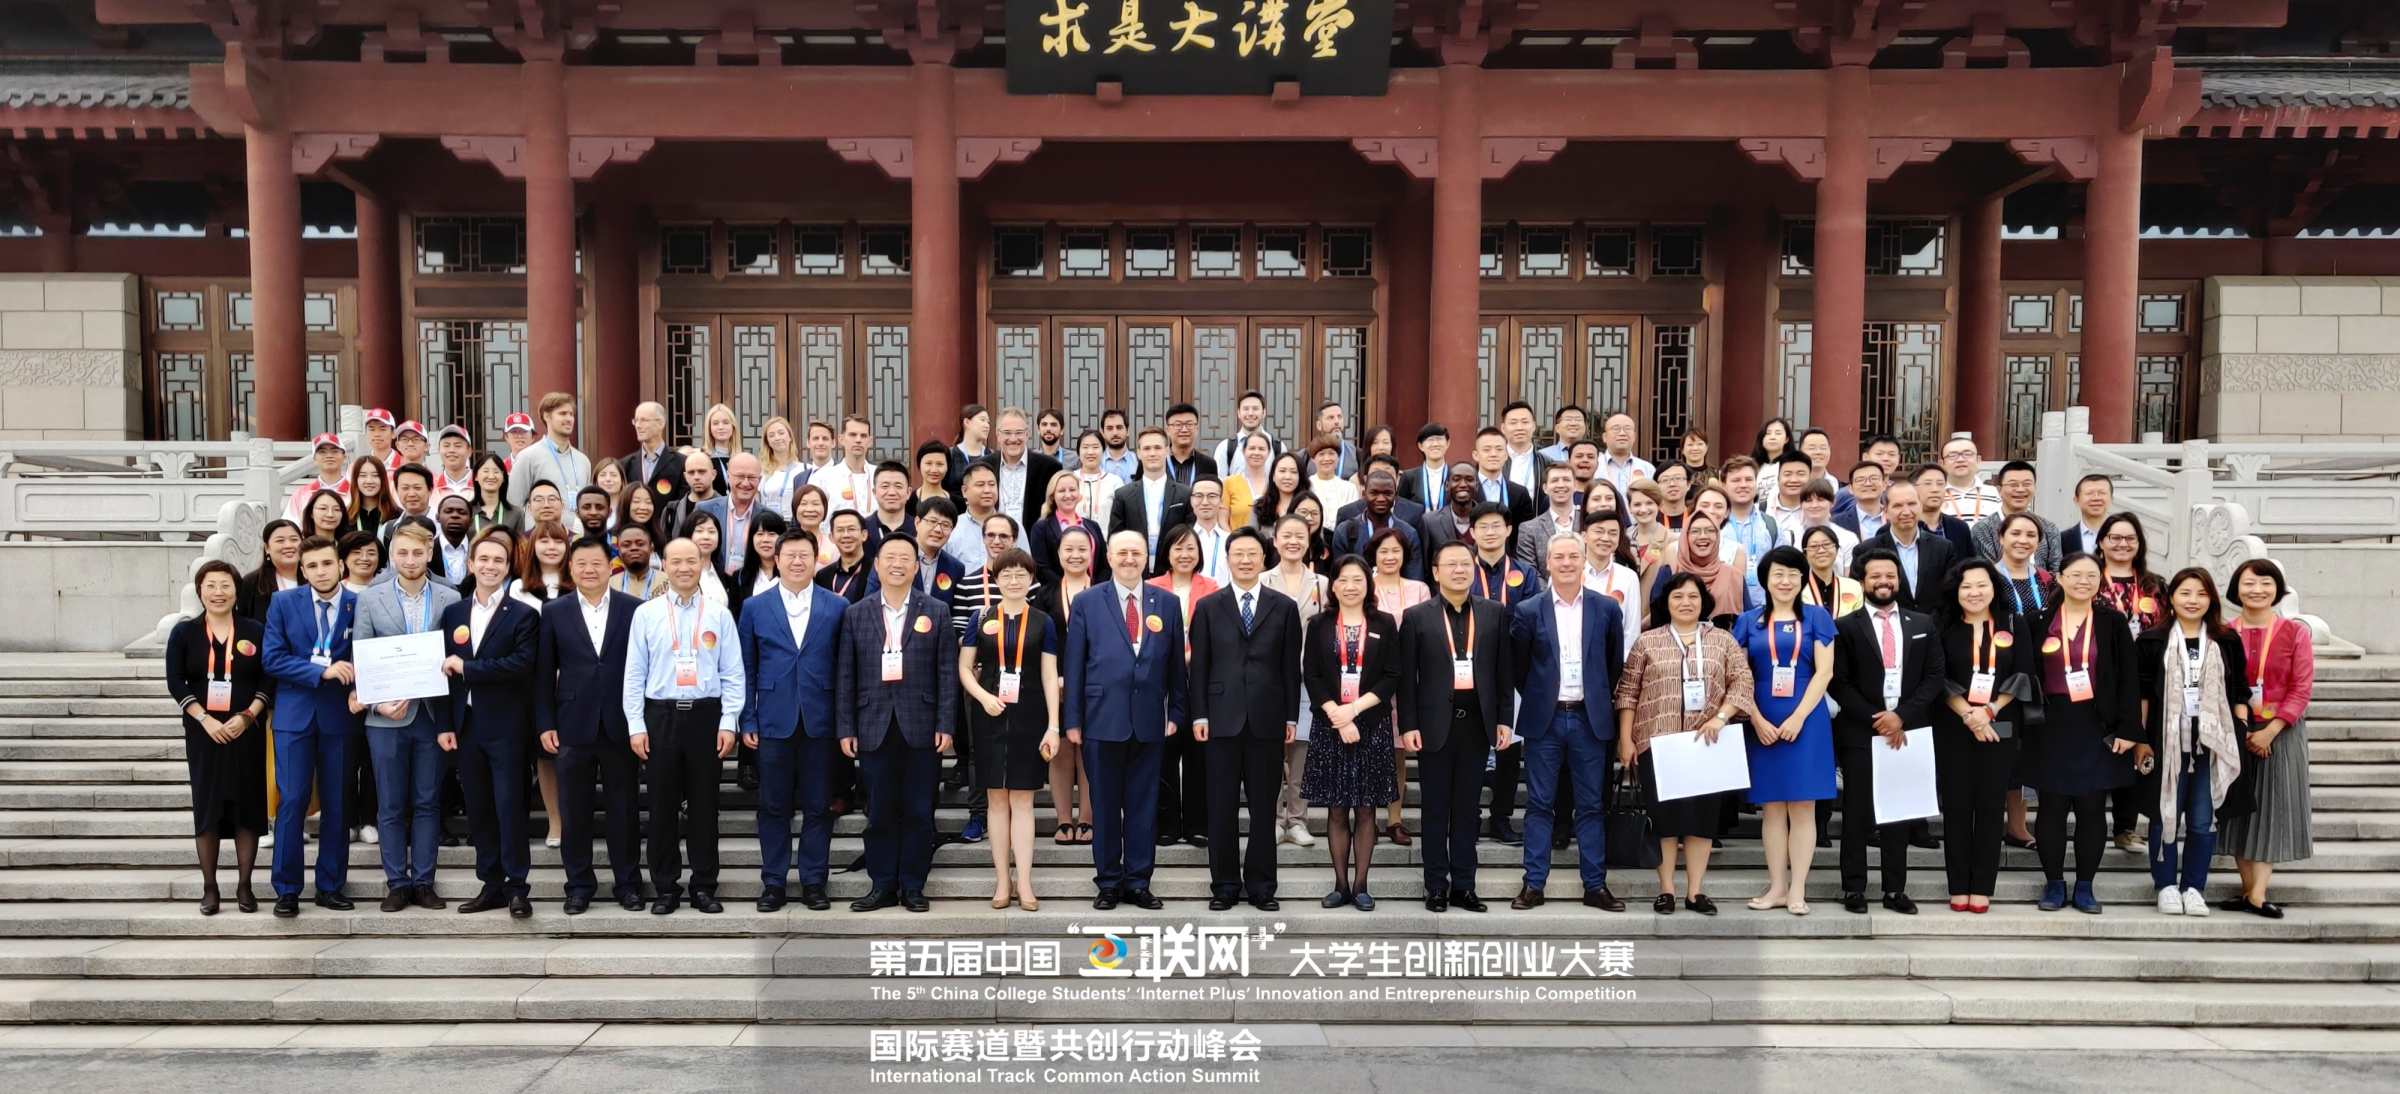 Group photo at the opening ceremony of International Track Common Action Summit of the Award